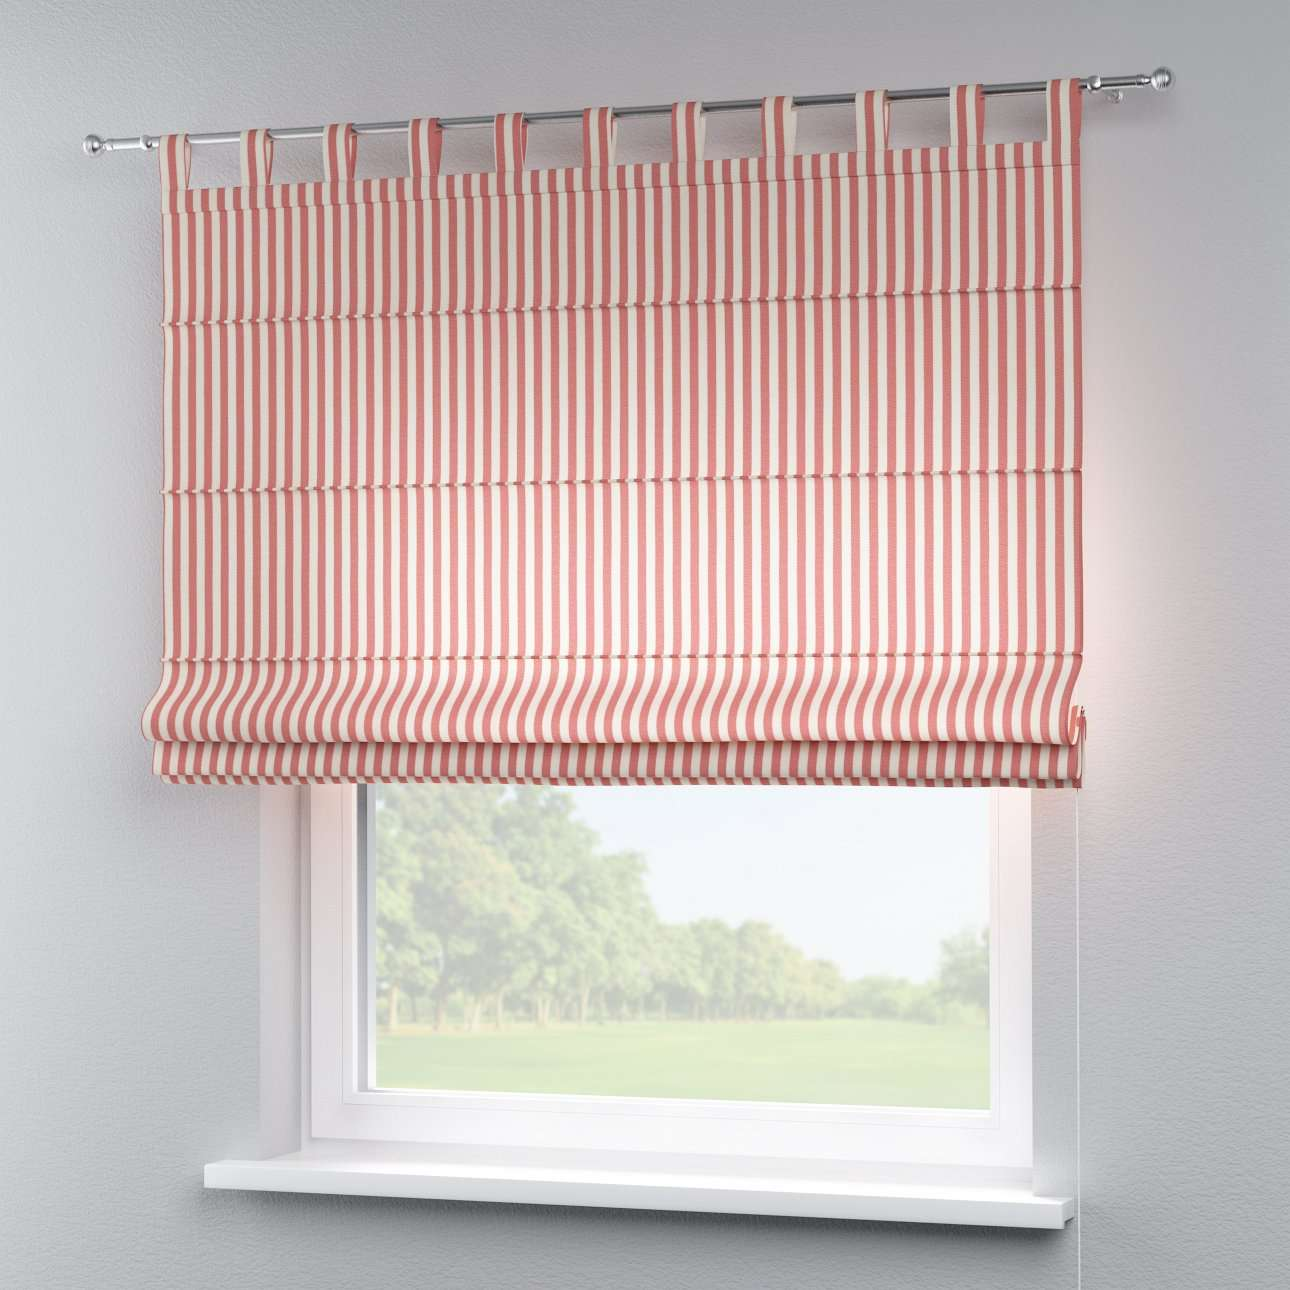 Verona tab top roman blind 80 x 170 cm (31.5 x 67 inch) in collection Quadro, fabric: 136-17